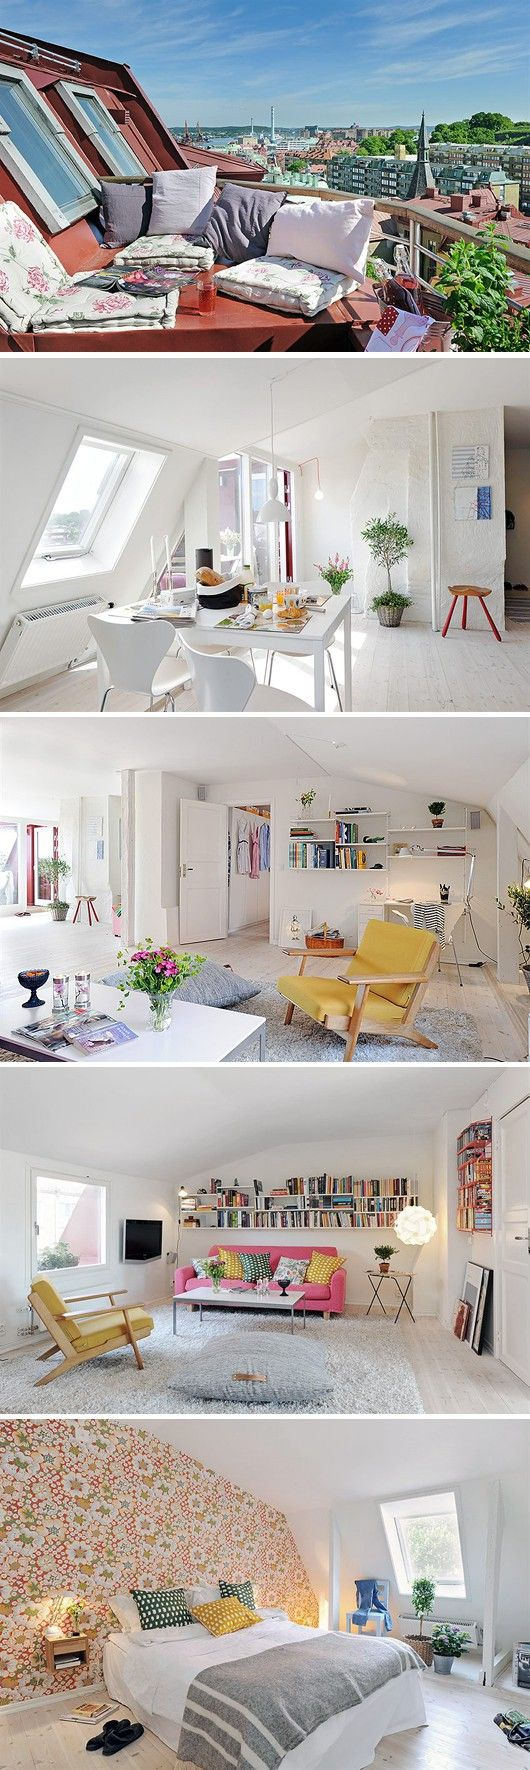 Attic design ideas interior example of -  Bright Light Shades Of White With Pops Of Color Spread Through Out Small Loft Opens Up This Space Gives An Airy But Vibrant Vibe Great Example For